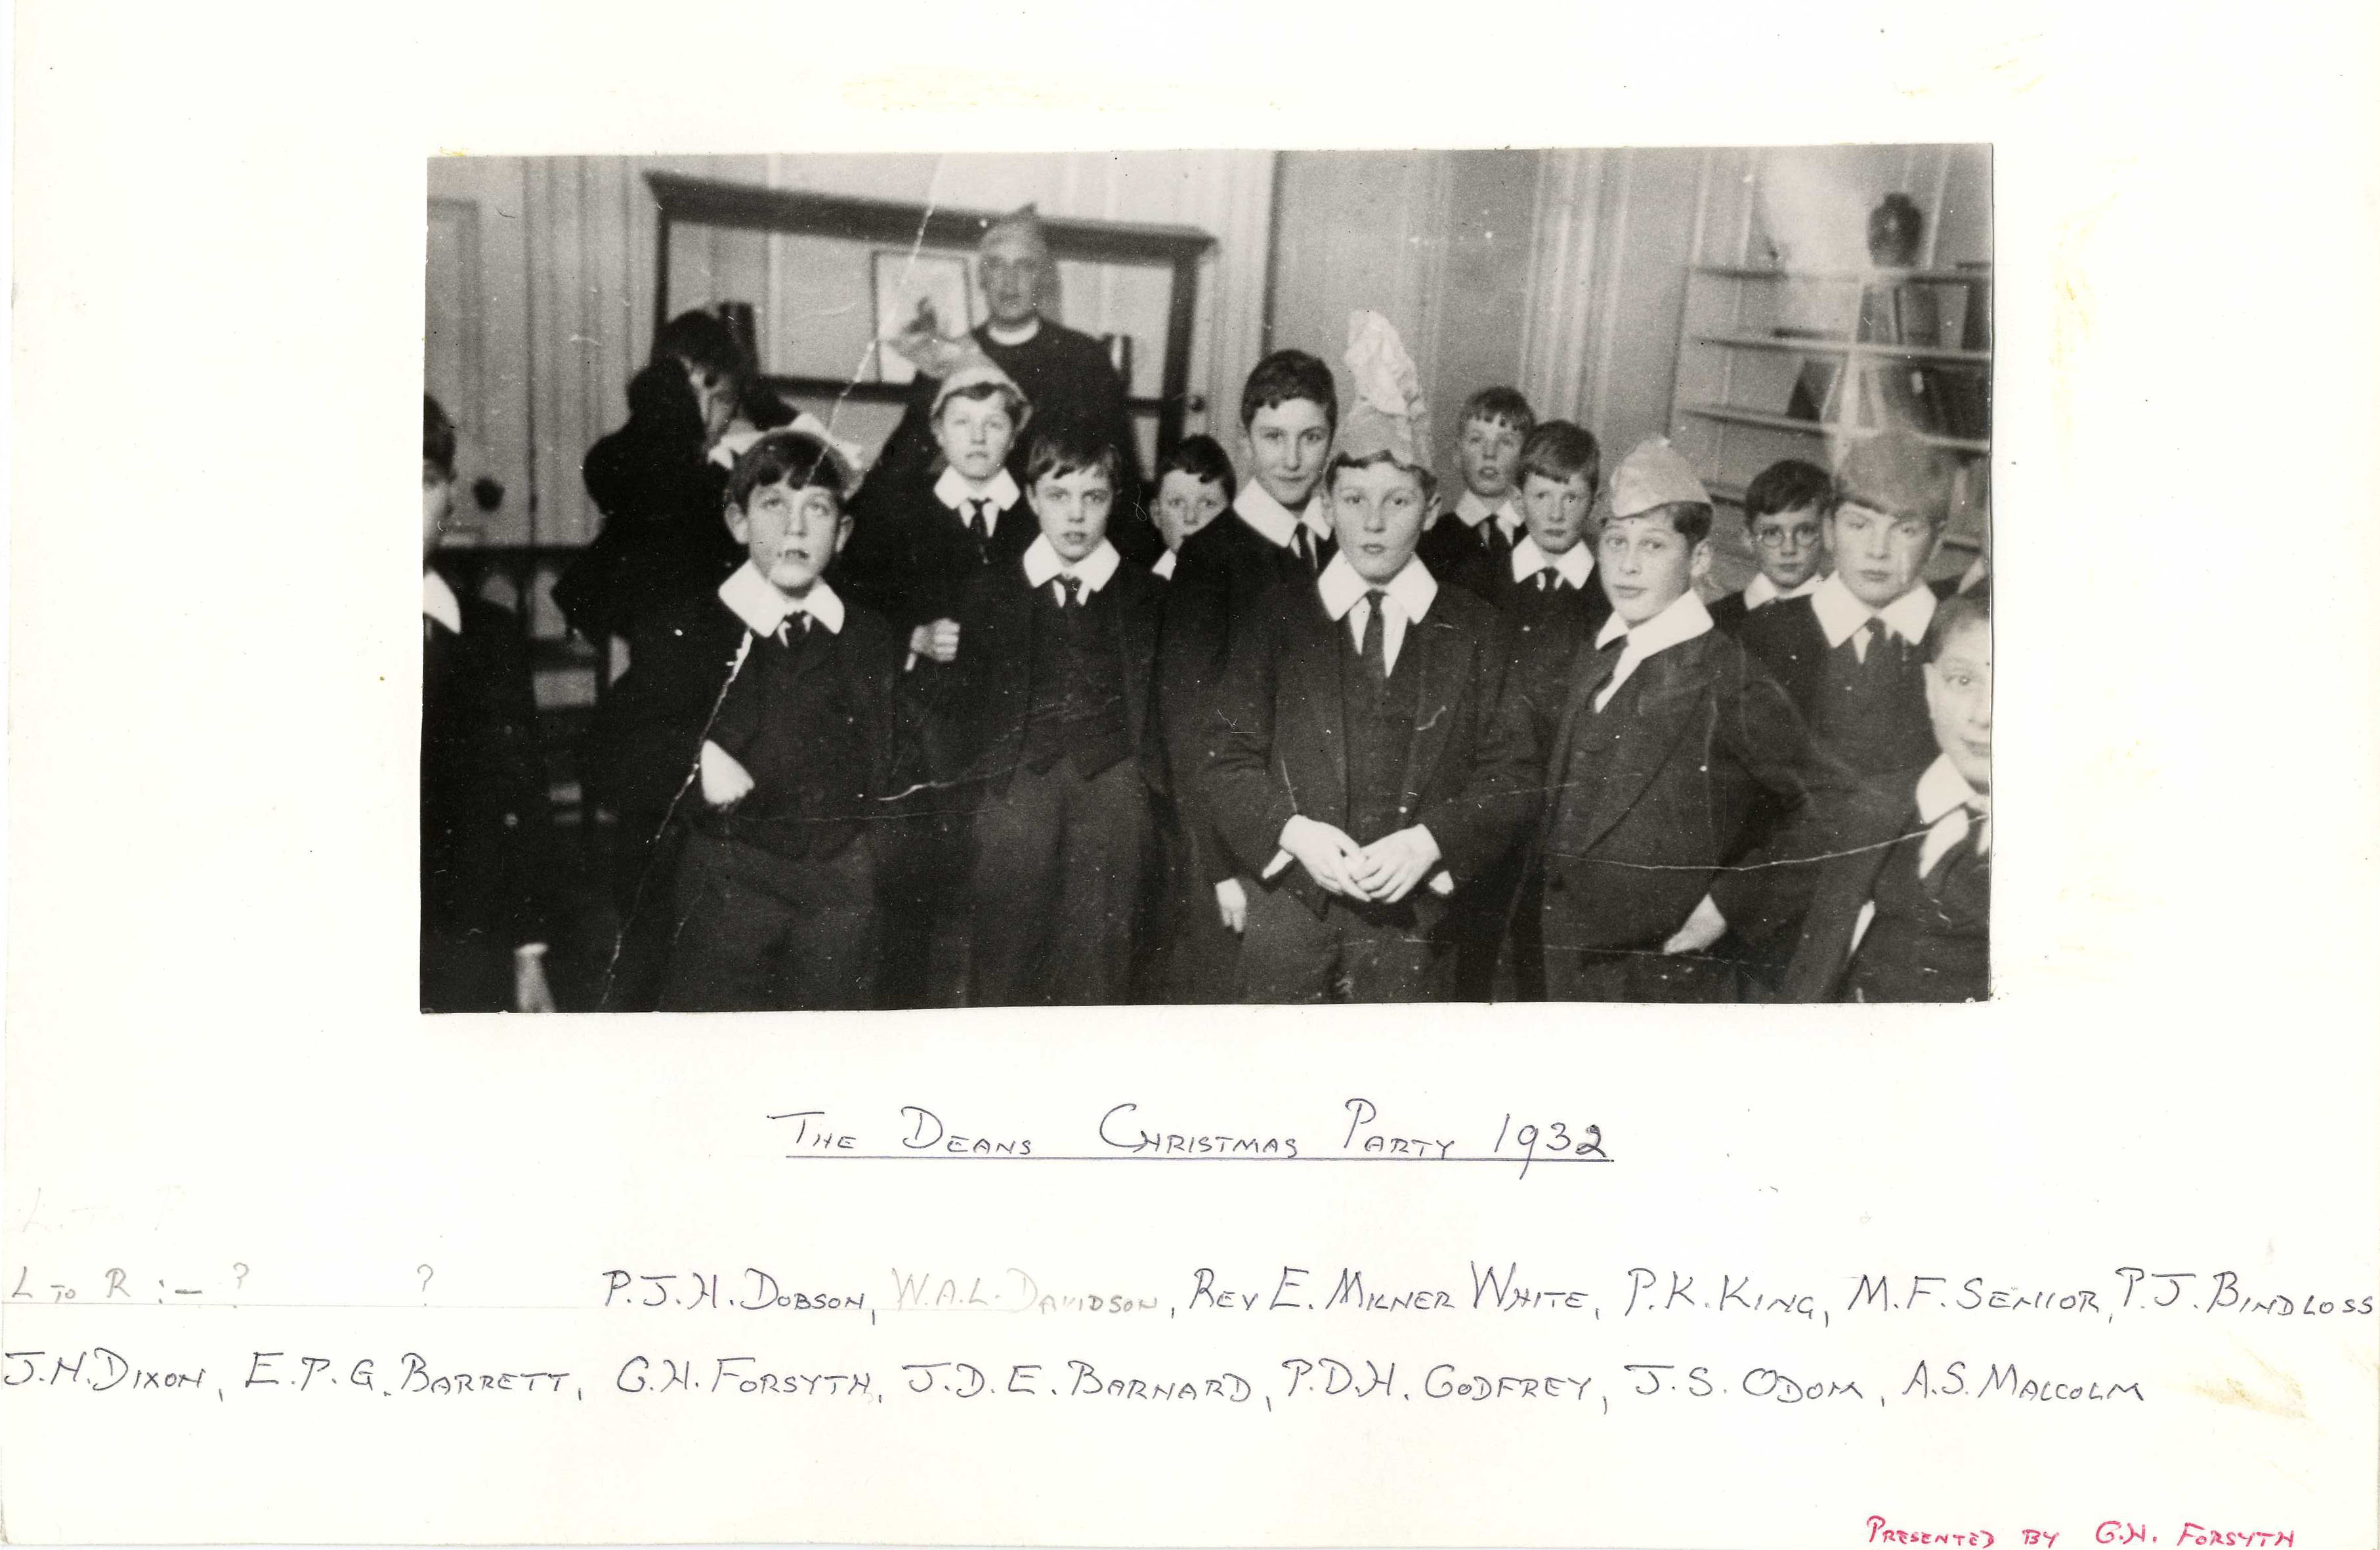 The Dean's Christmas Party, 1932, showing Milner-White at the back. (KCPH/2/2/2/10, presented by G.H. Forsyth)